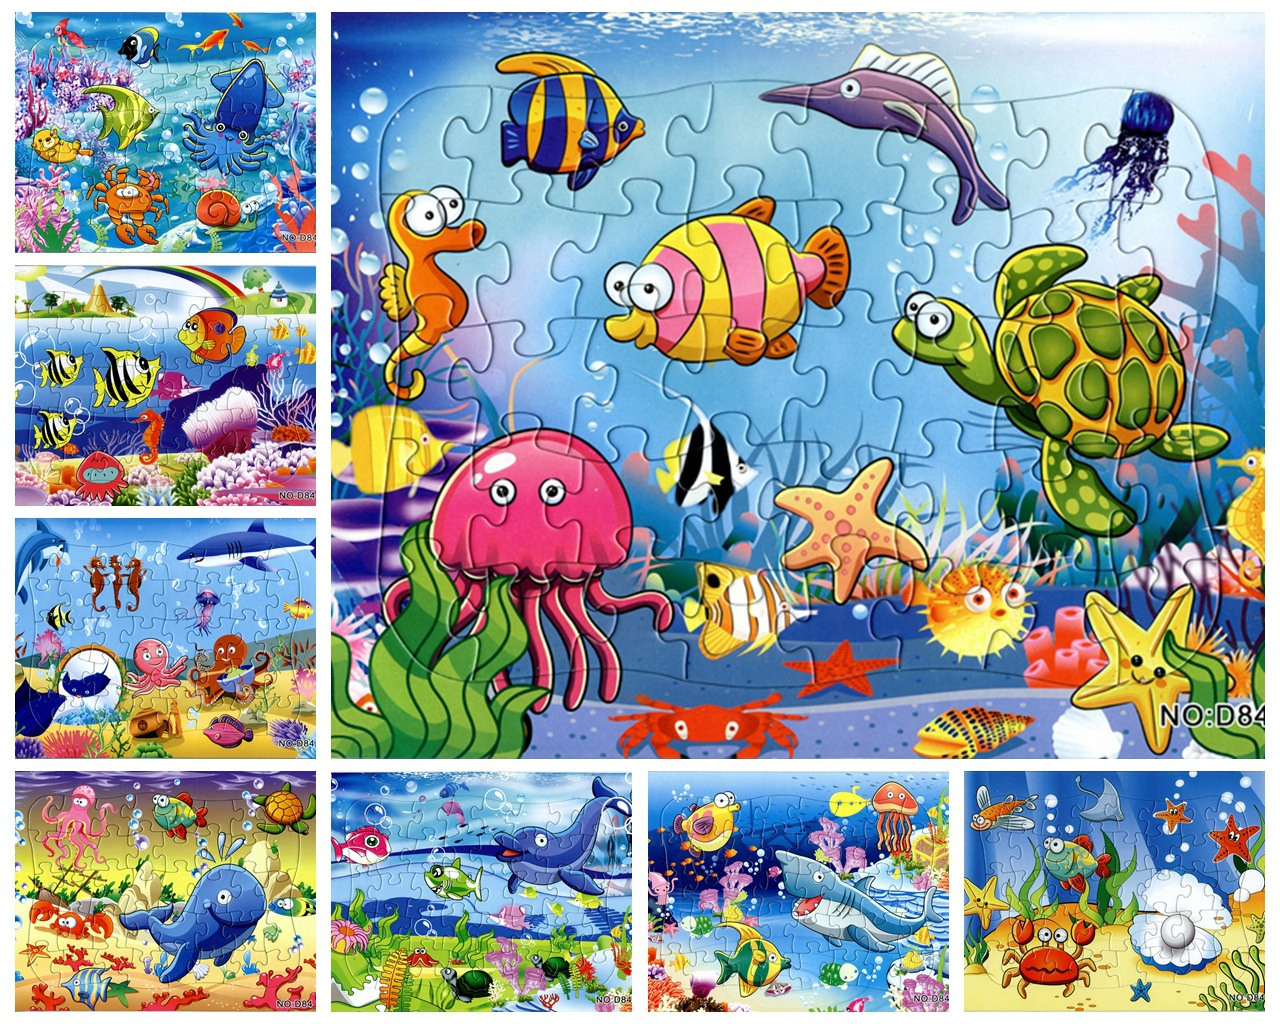 2pcs/lot Kids Cartoon Puzzle 40Pieces Paper Marine Undersea World  Sea Turtle Shark Animal Toys Puzzles Jigsaw Puzzel Toy Gift